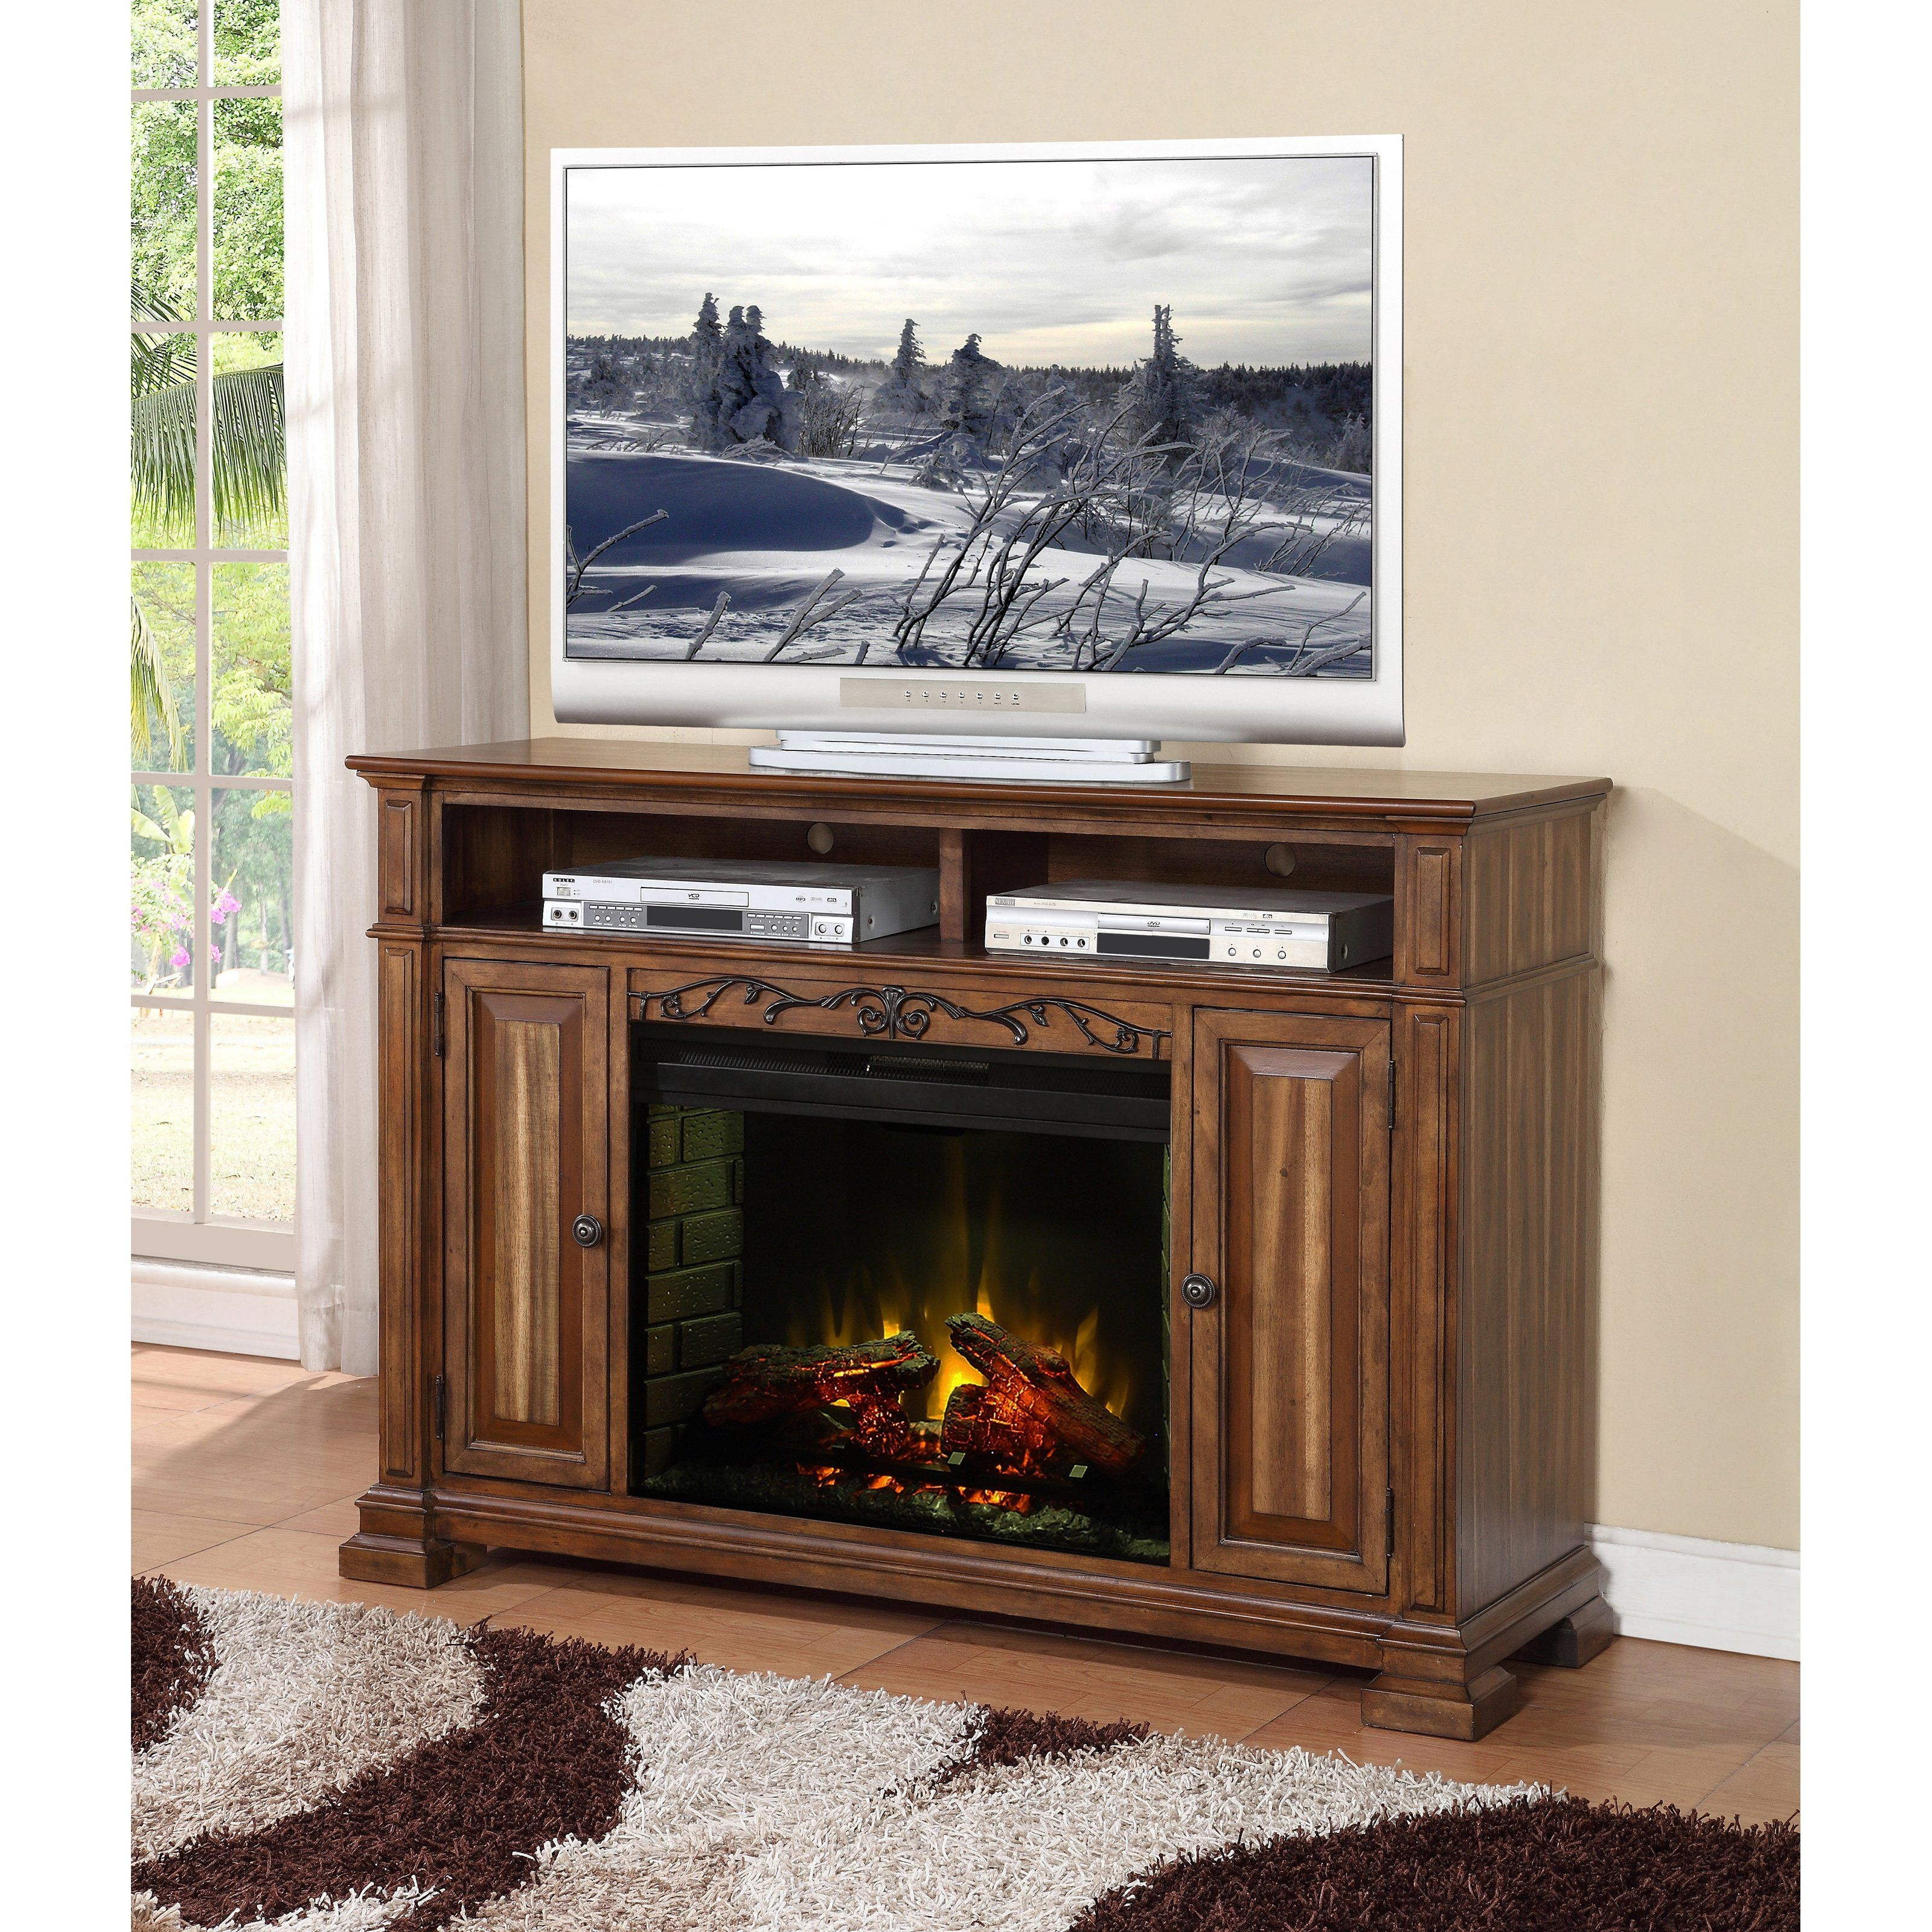 legends furniture barclay 60 in electric media fireplace zbcl rh id pinterest com